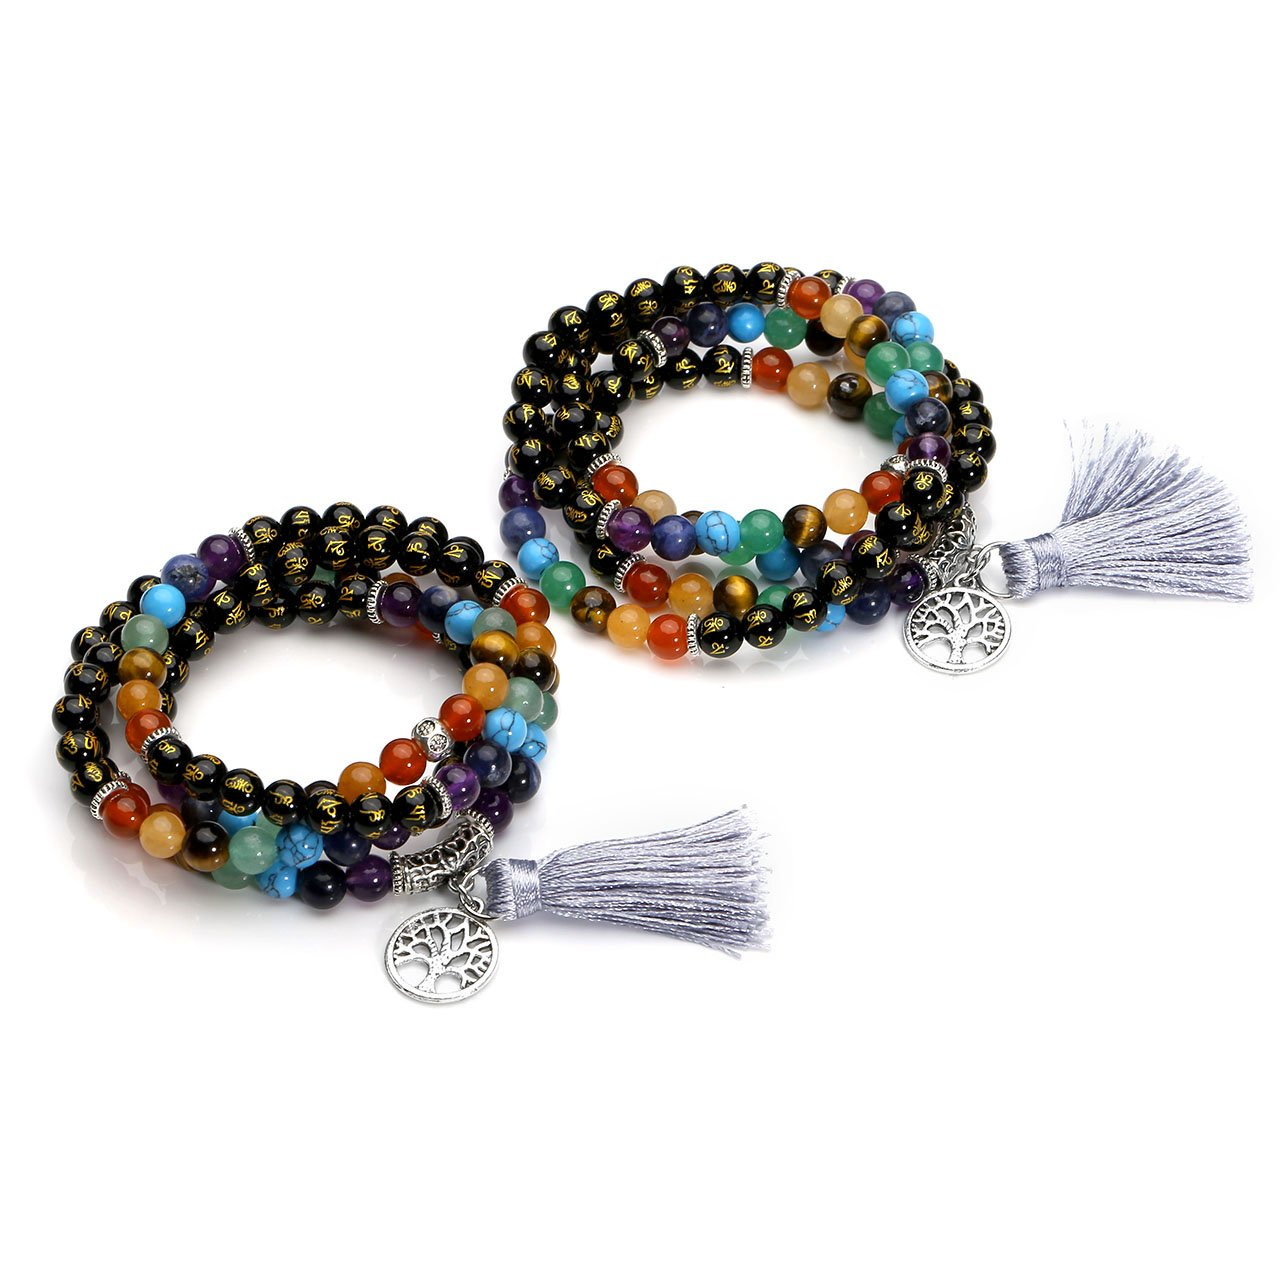 MANIFO 7 Chakra Buddhist Prayer Mala Beads Mantra Om Mani Padme Hum 108 Meditation Healing Multilayer Bracelet/Necklace Tree Life Pendant Tassel Charm